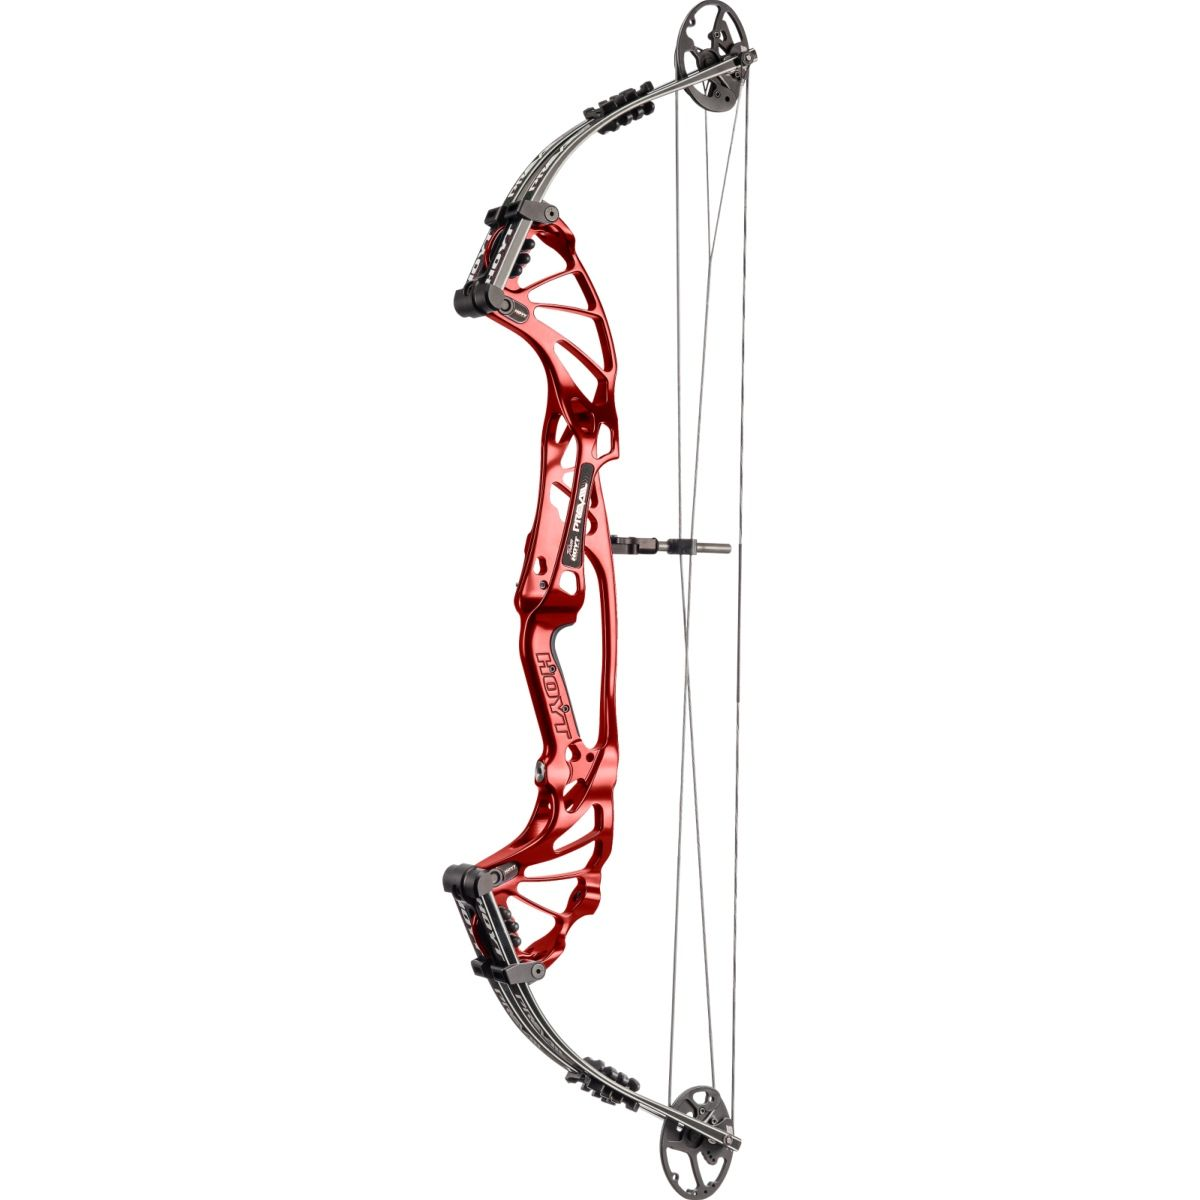 "Блочный лук HOYT PREVAIL ELITE 40 SVX CAM 3 RH 60LBS 29-30"""" RED"""